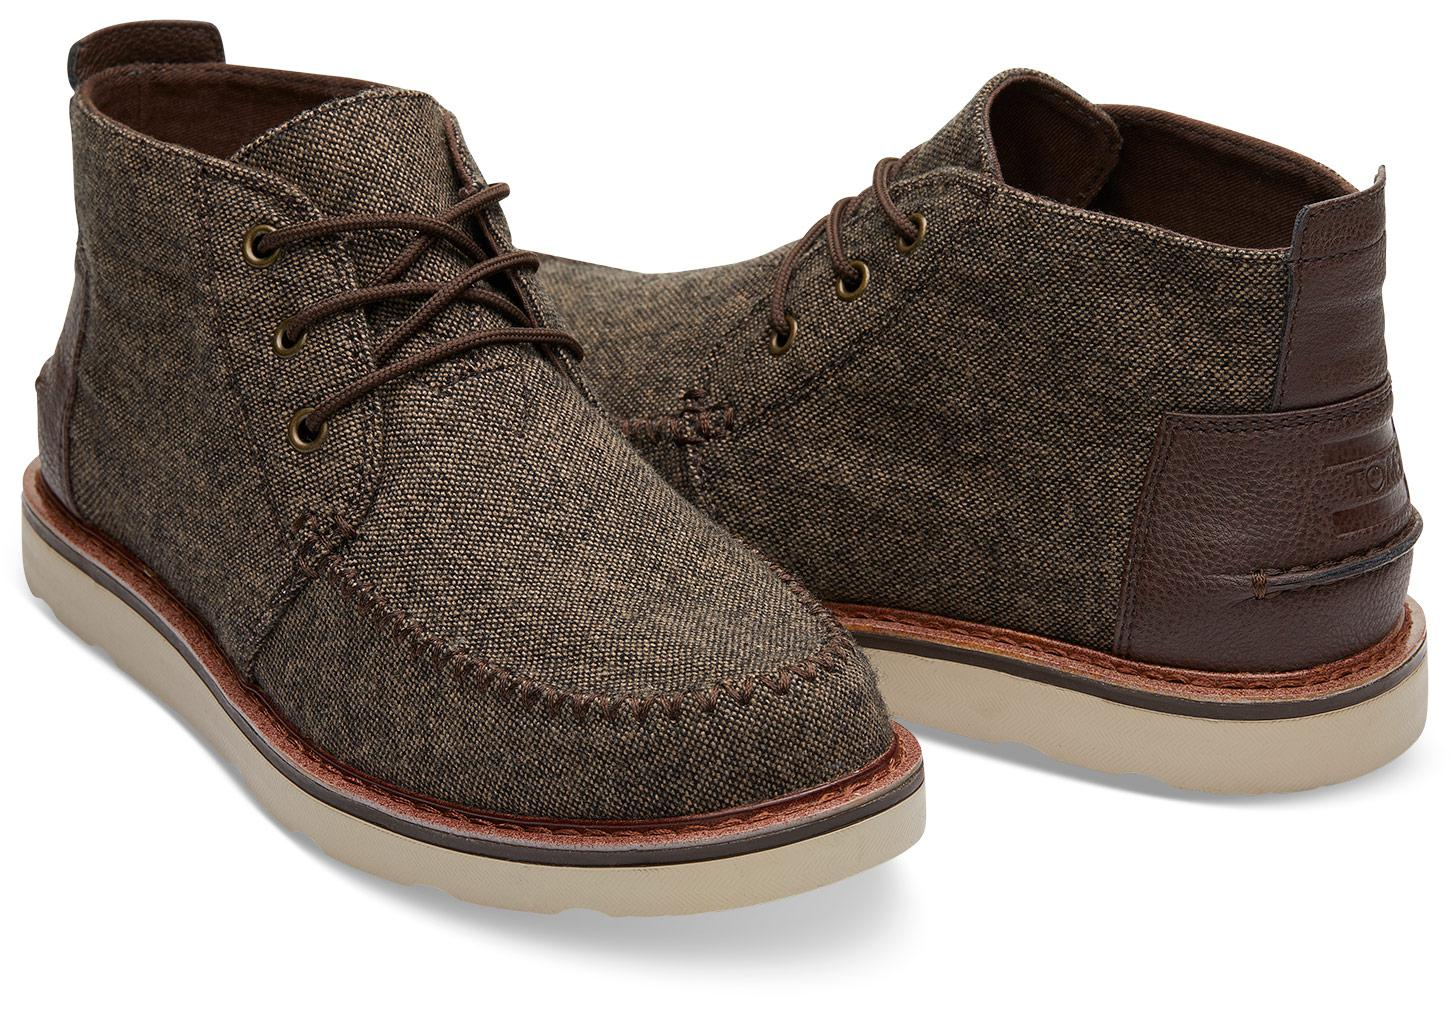 72122e84d87 Lyst - TOMS Chocolate Brown Brushed Wool Men s Chukka Boots in Brown ...